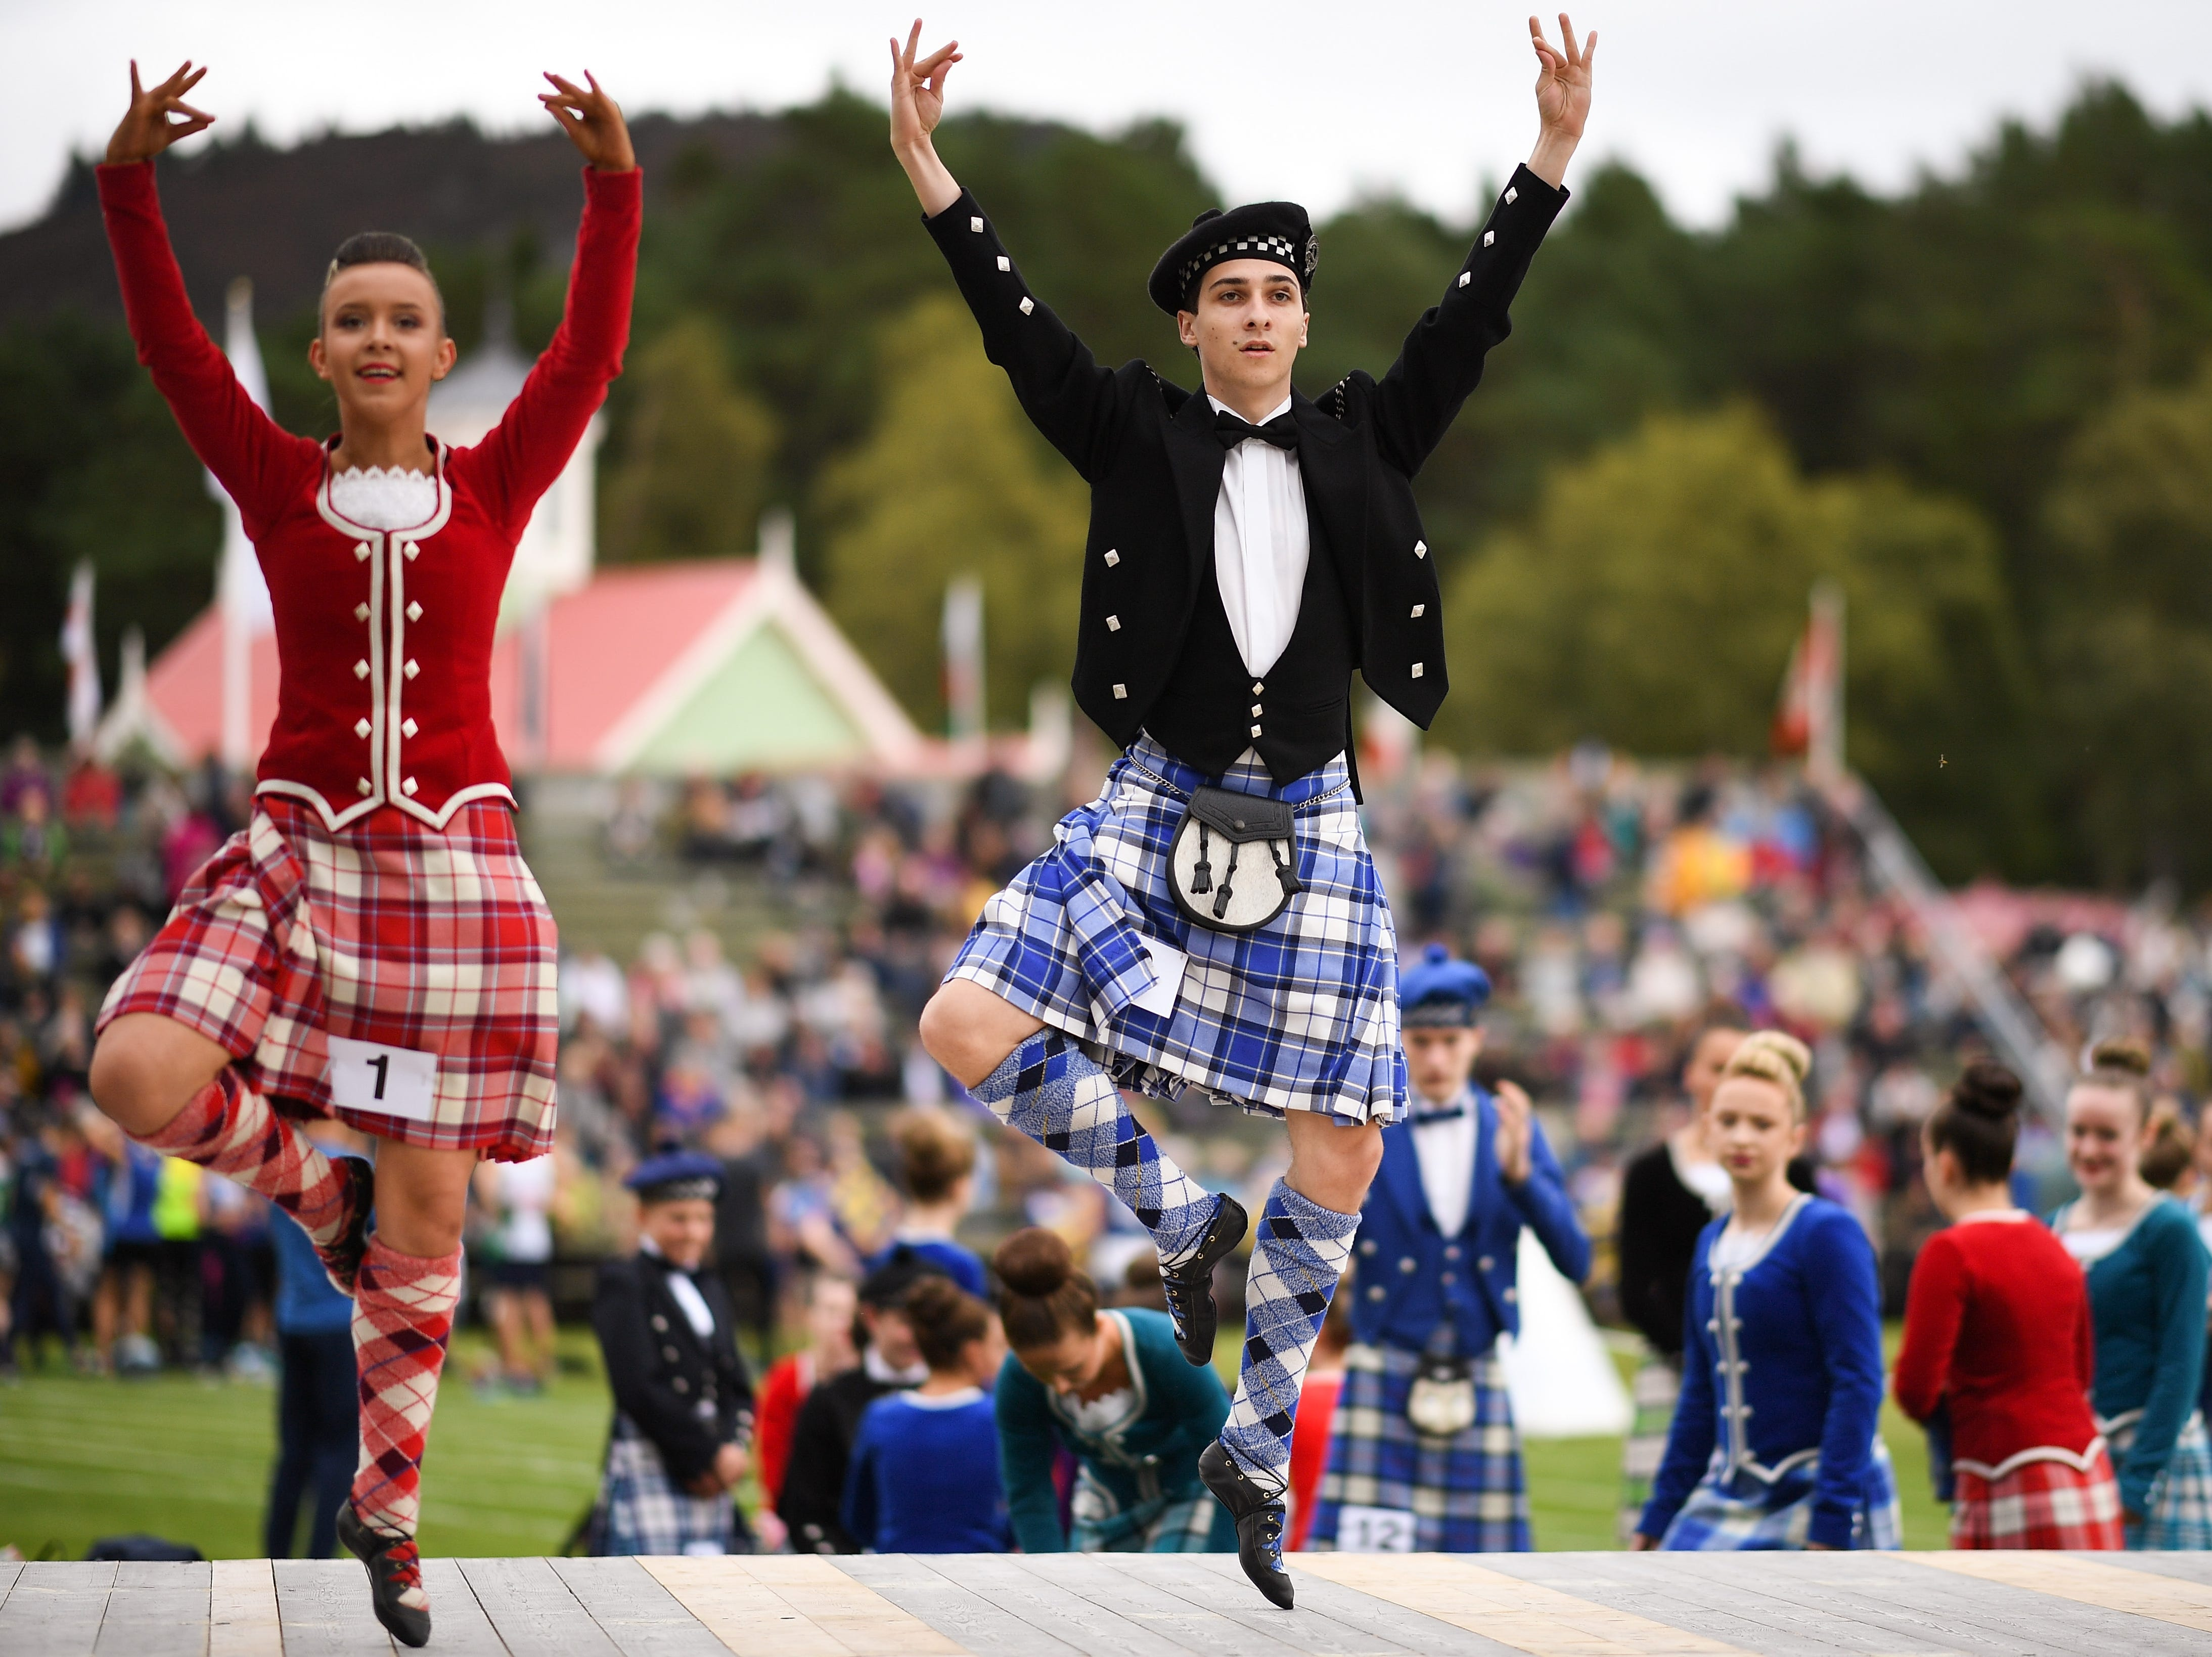 Dancers compete during the Annual Braemar Highland Gathering.